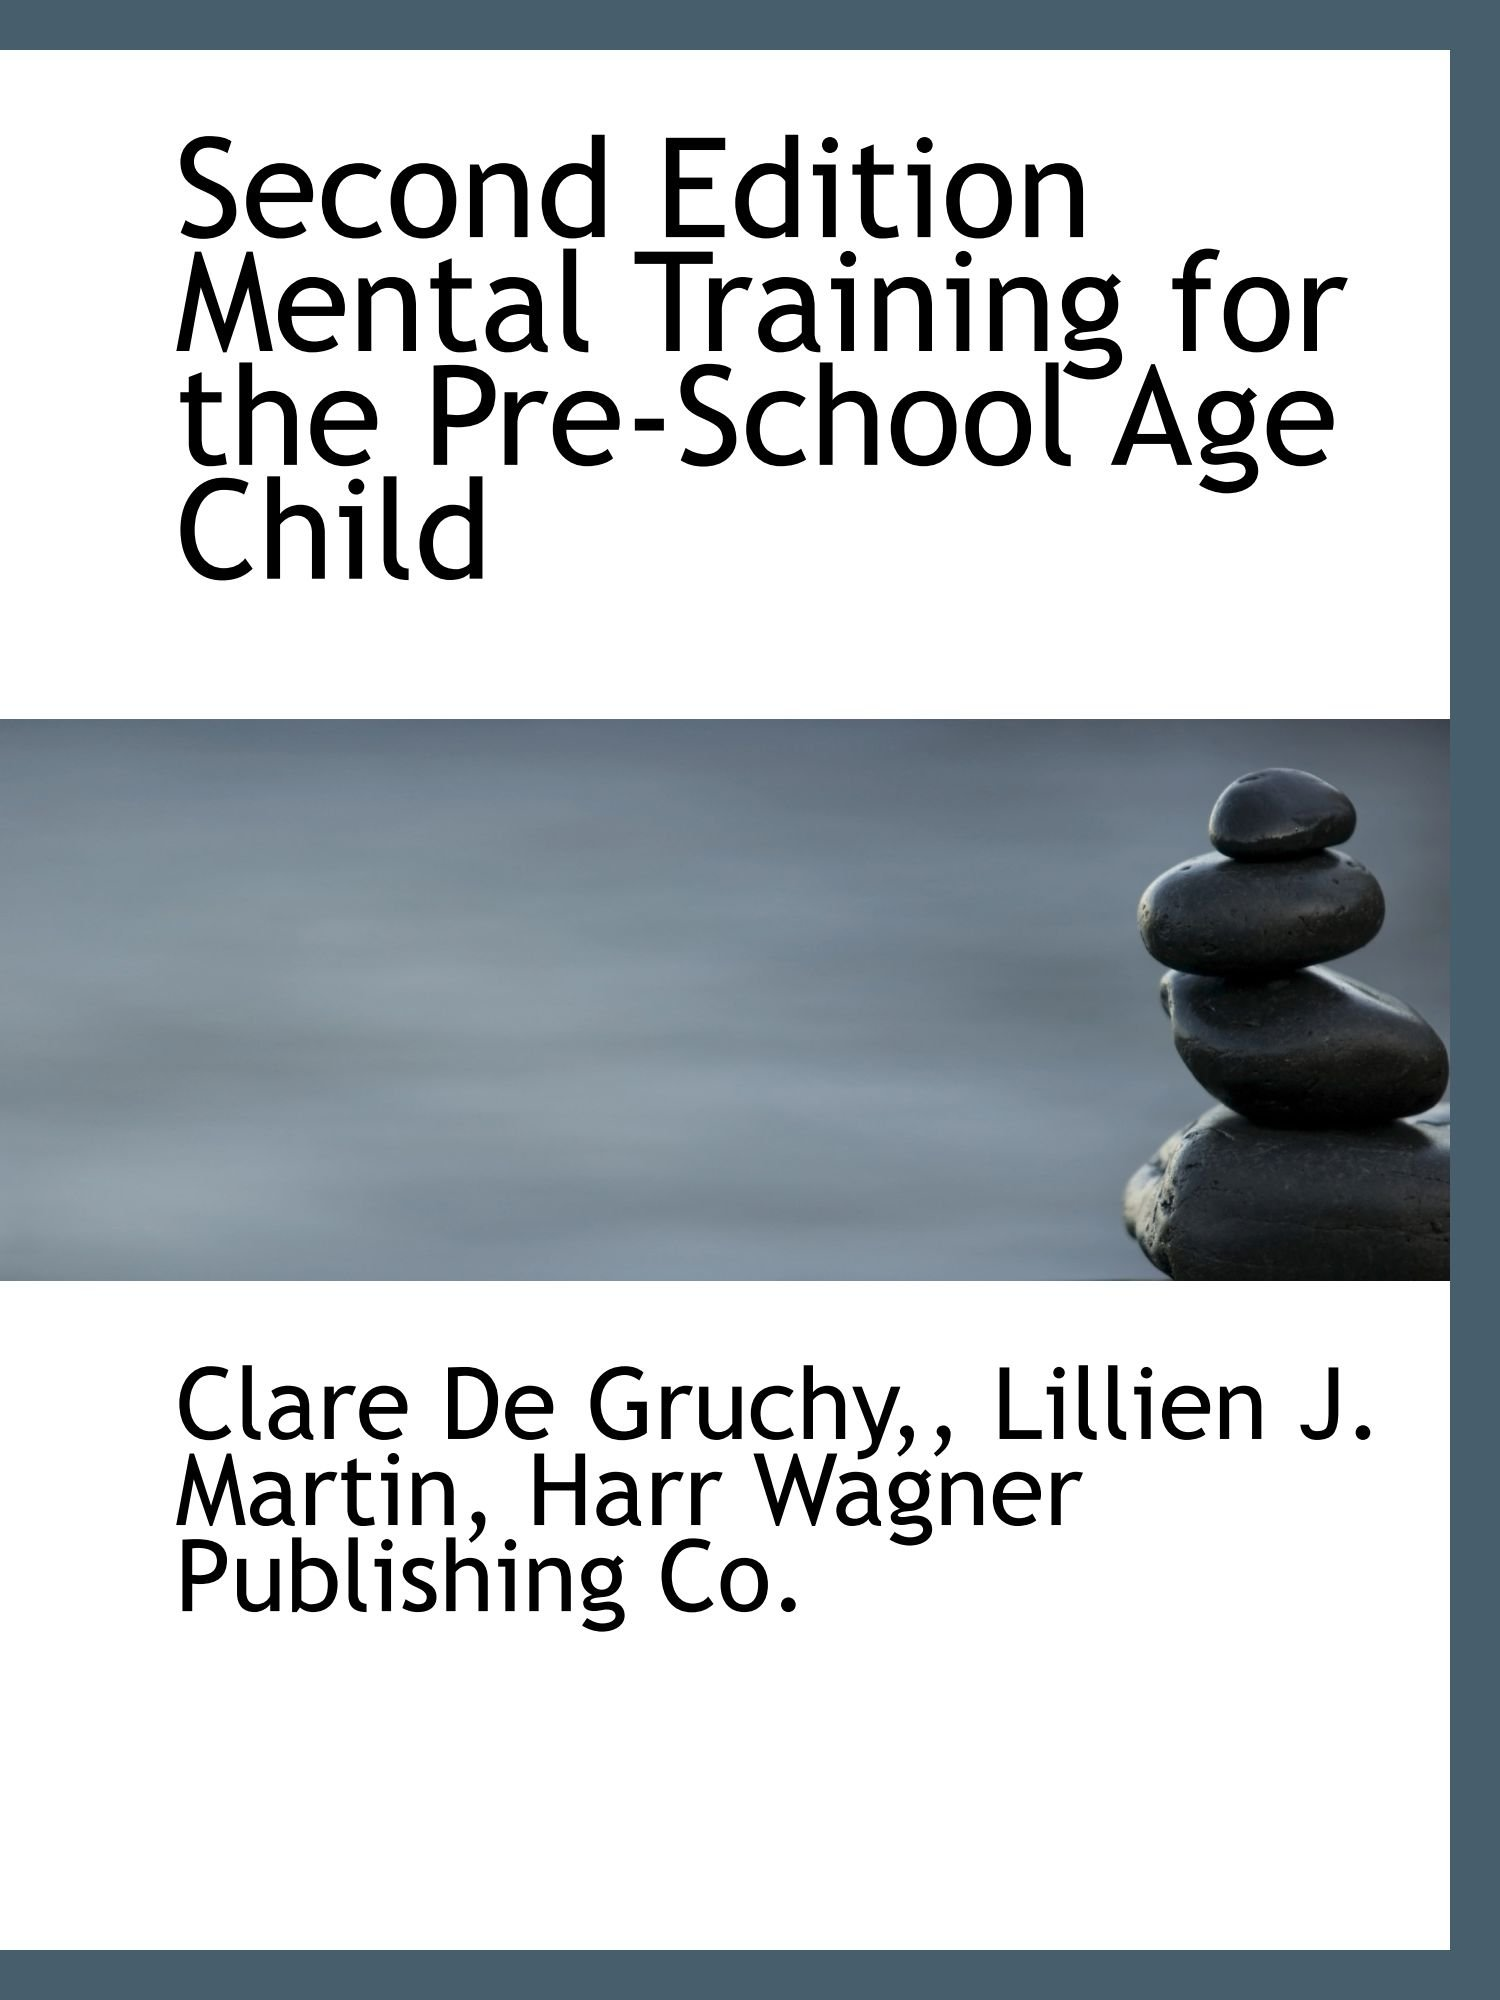 Second Edition Mental Training for the Pre-School Age Child ebook